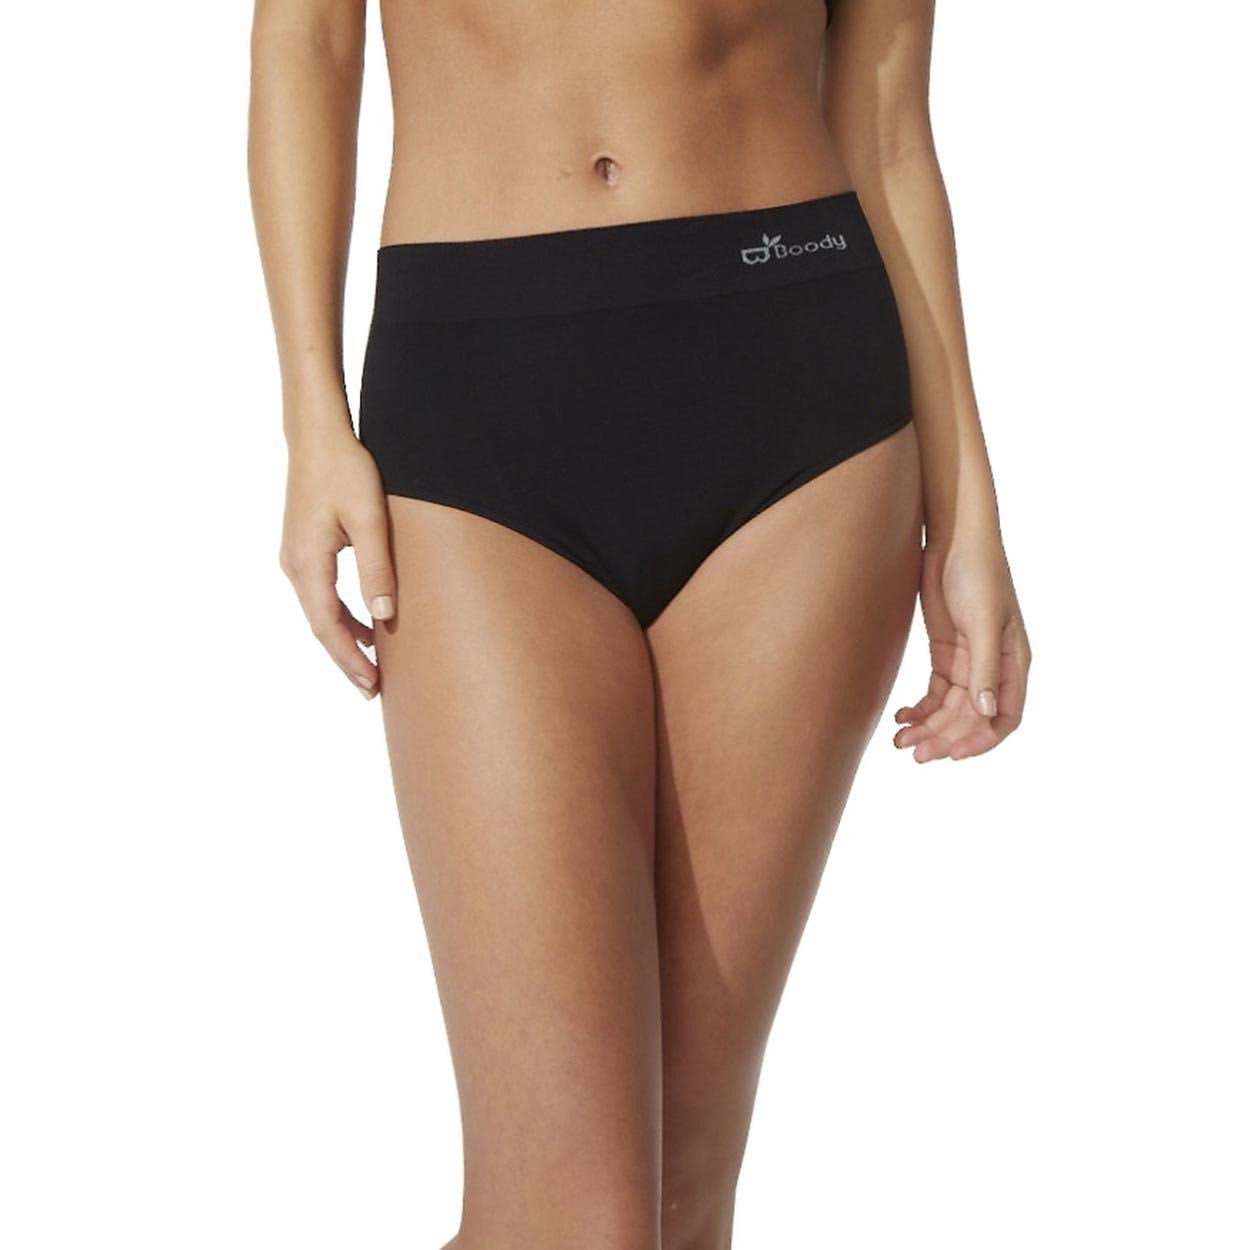 Boody Organic Bamboo Full Brief Black - Large Pack